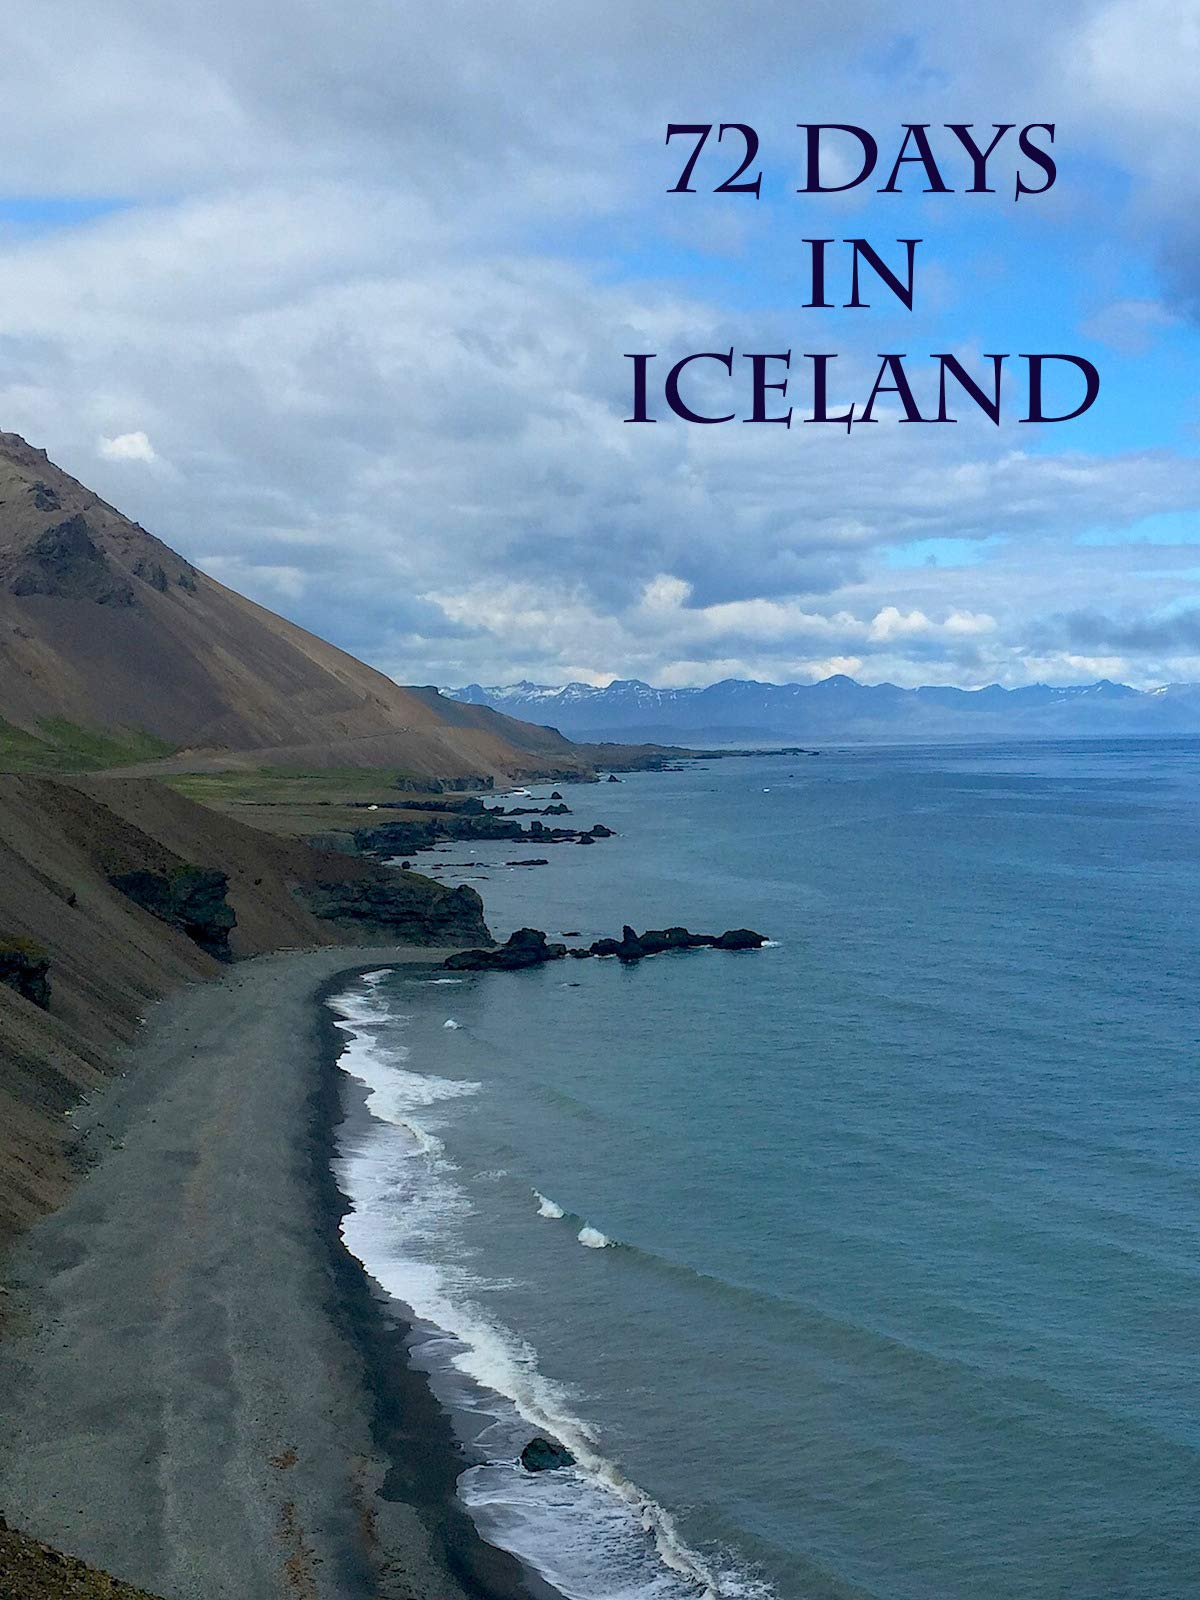 72 days in Iceland on Amazon Prime Instant Video UK